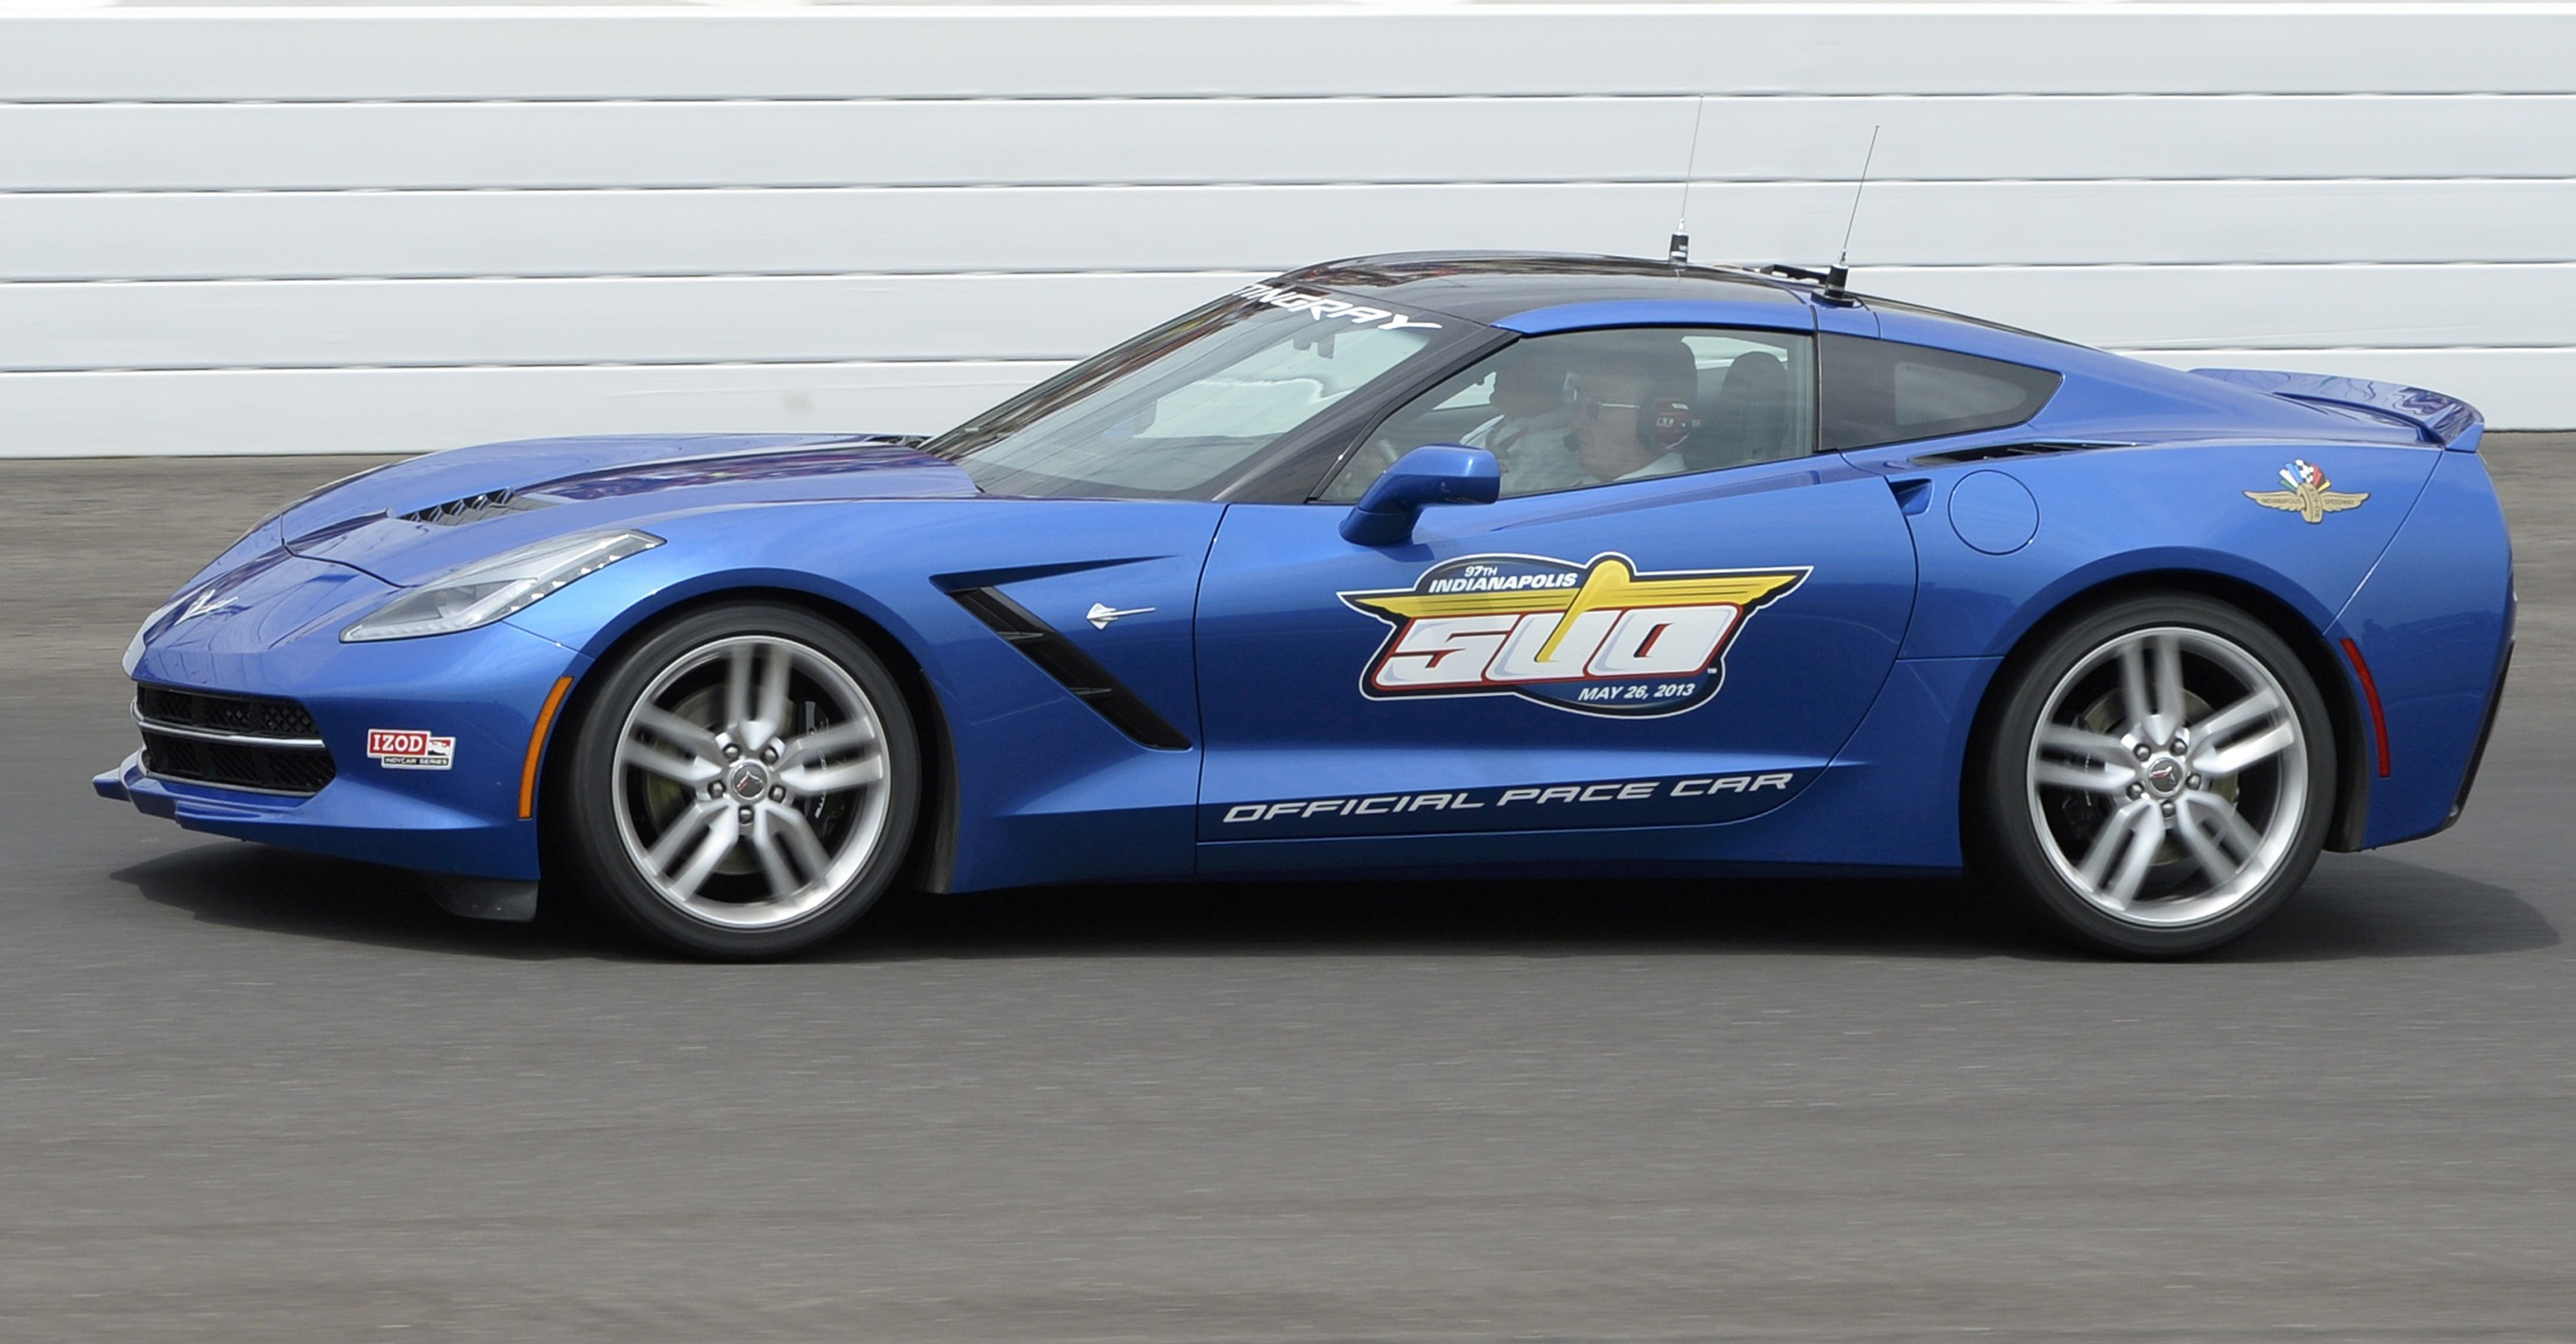 A 2014 Chevrolet Corvette Stingray paces the 97th running of the Indianapolis 500 at the Indianapolis Motor Speedway in Indianapolis, Ind., May 26, 2013.